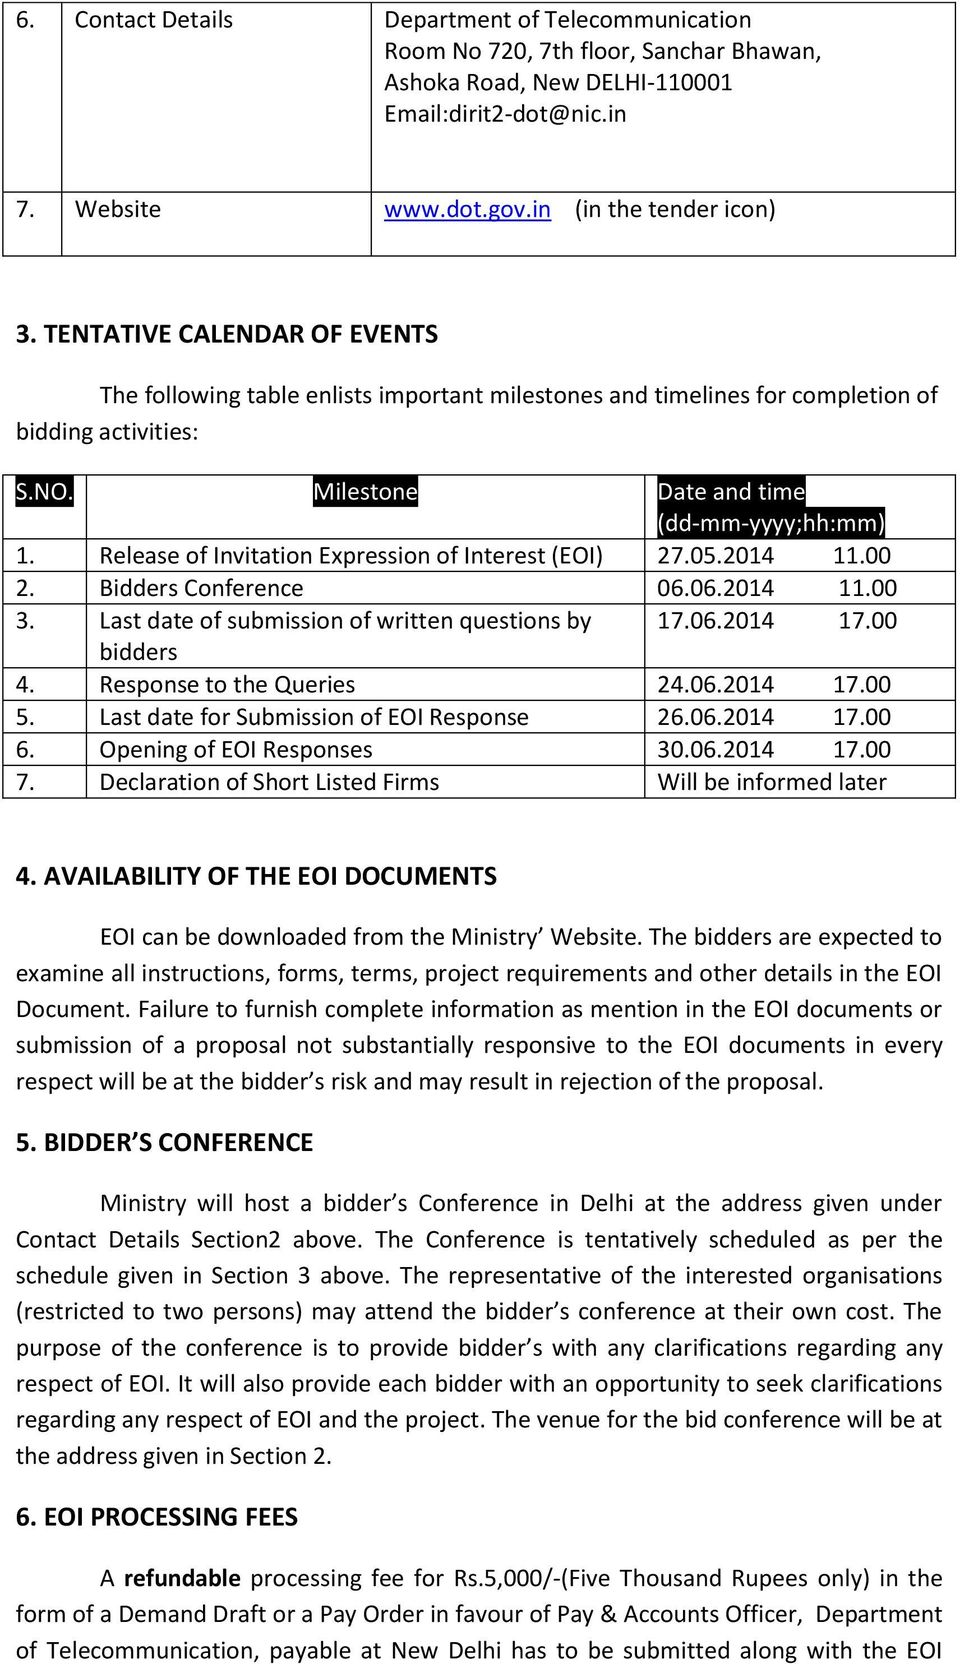 Release of Invitation Expression of Interest (EOI) 27.05.2014 11.00 2. Bidders Conference 06.06.2014 11.00 3. Last date of submission of written questions by 17.06.2014 17.00 bidders 4.